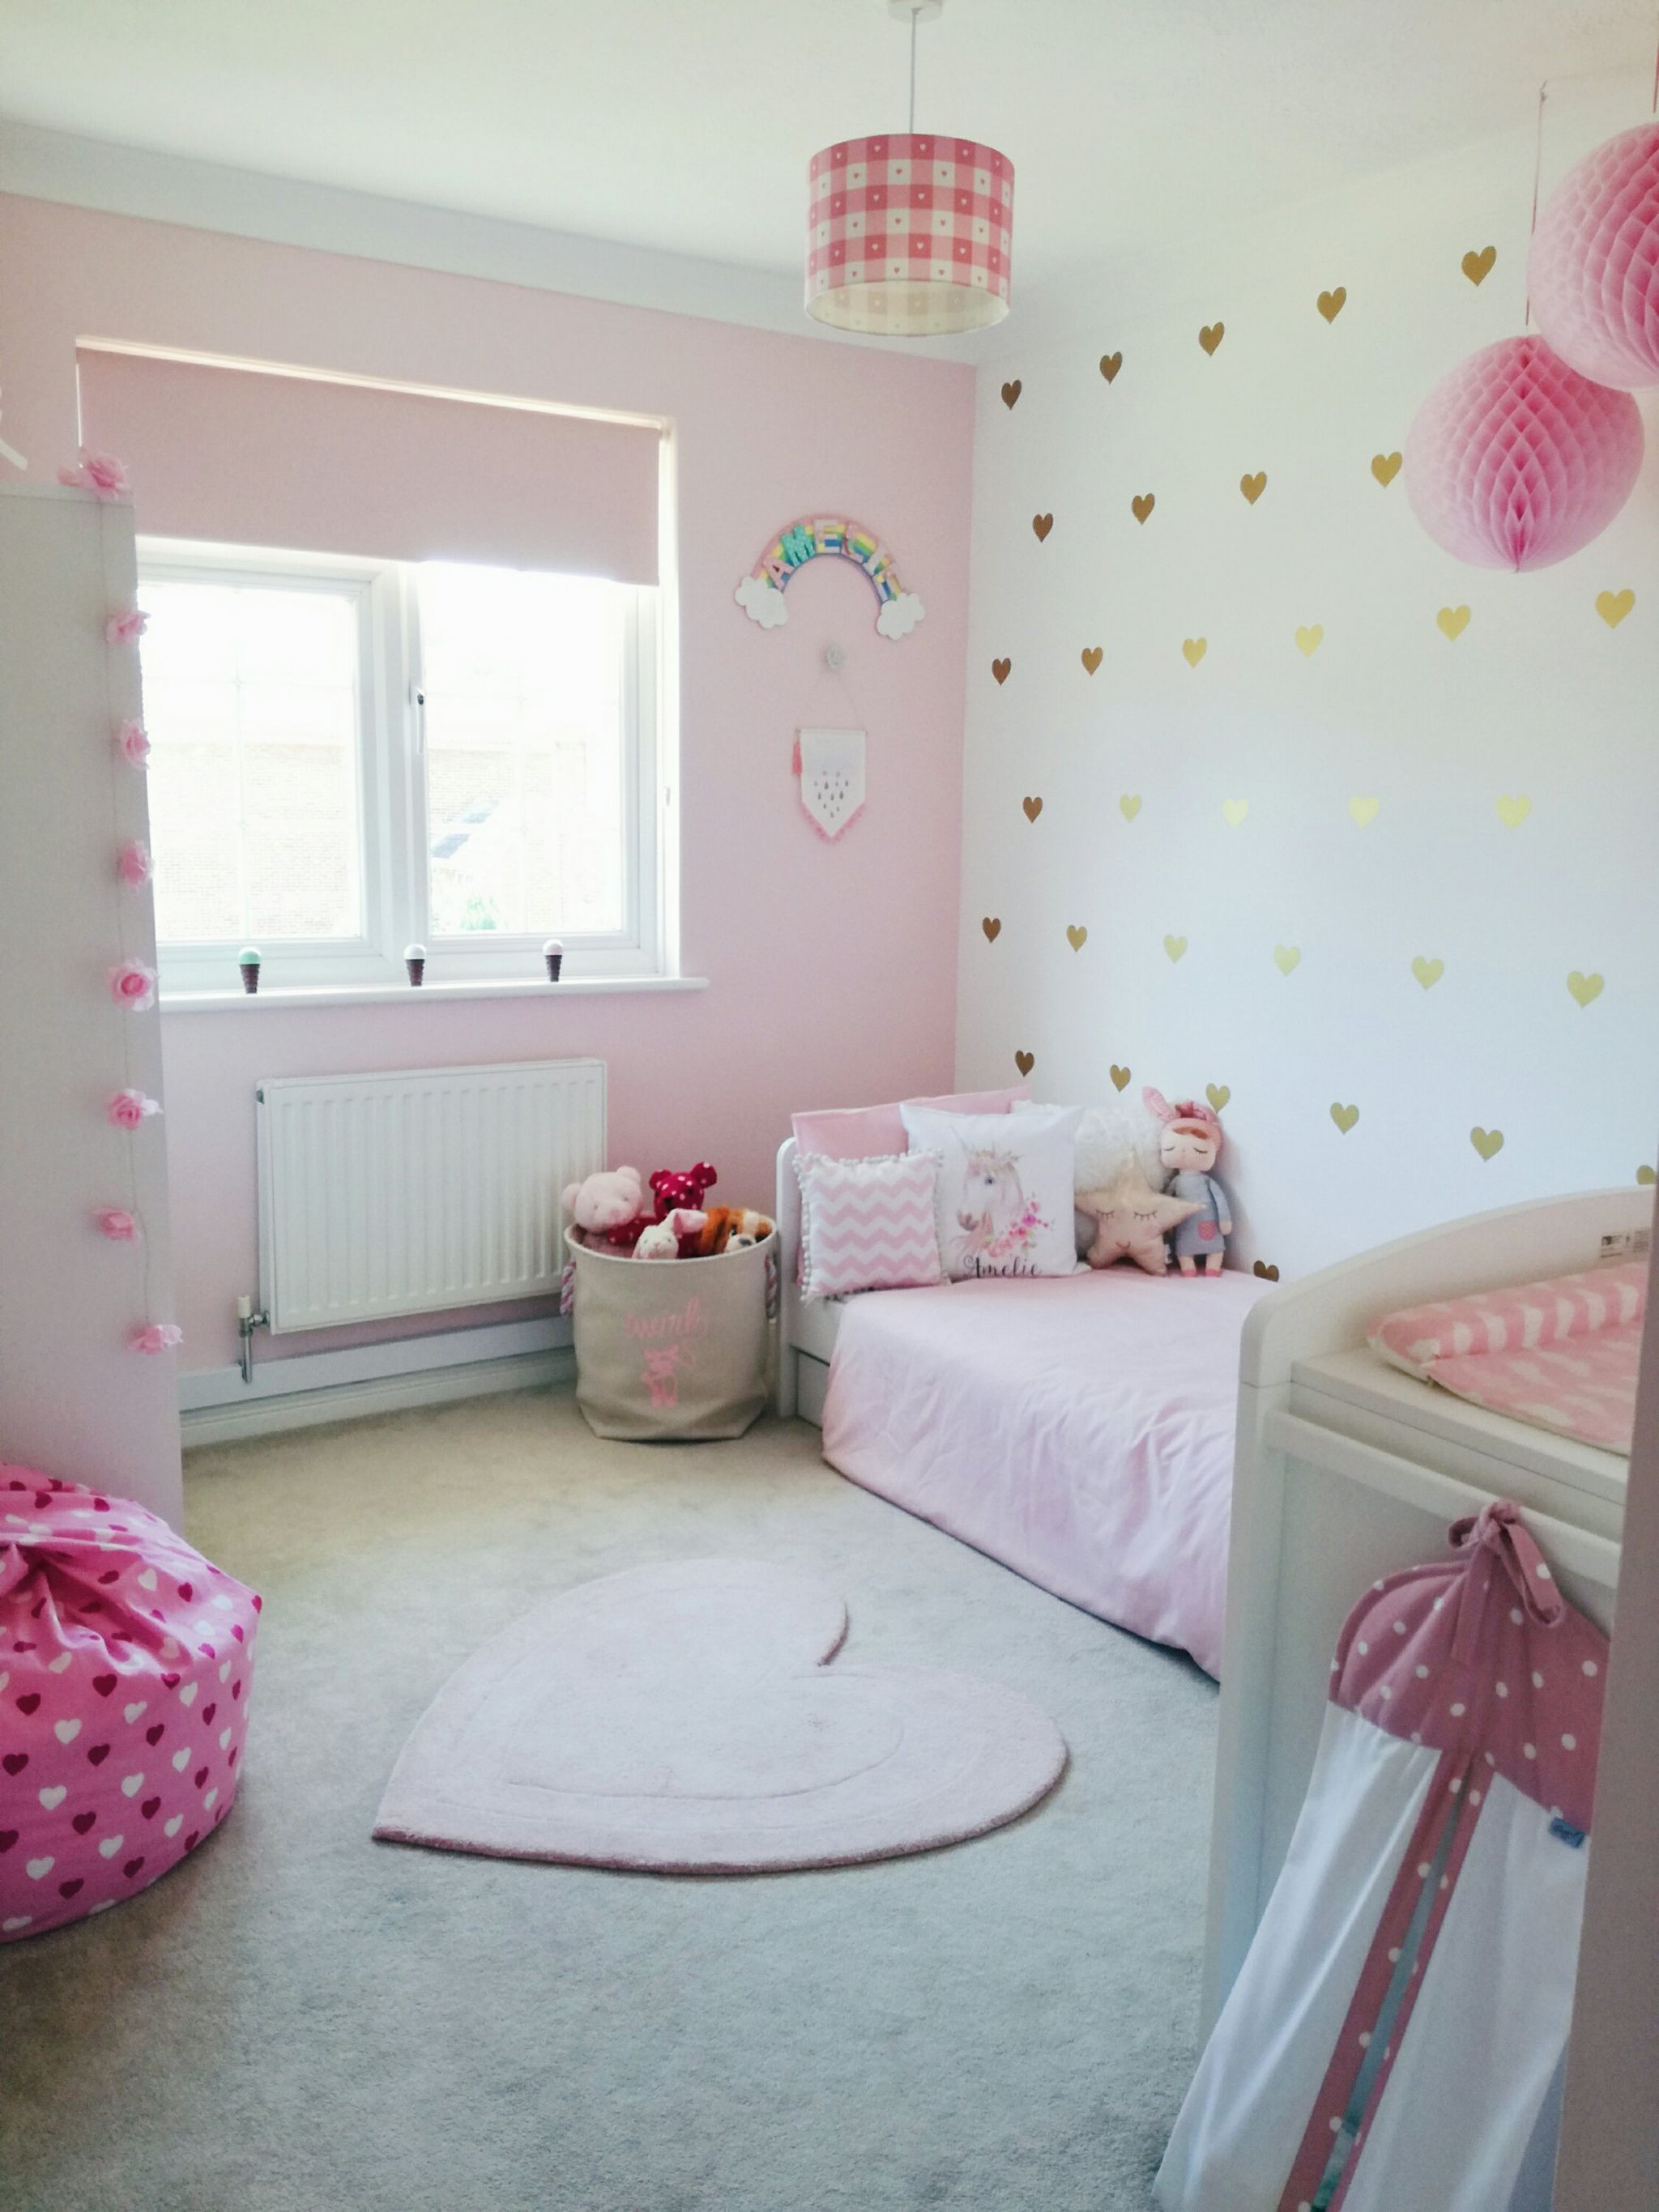 About in 2019 | Circu\'s Magical Blog | Pink bedroom decor ...